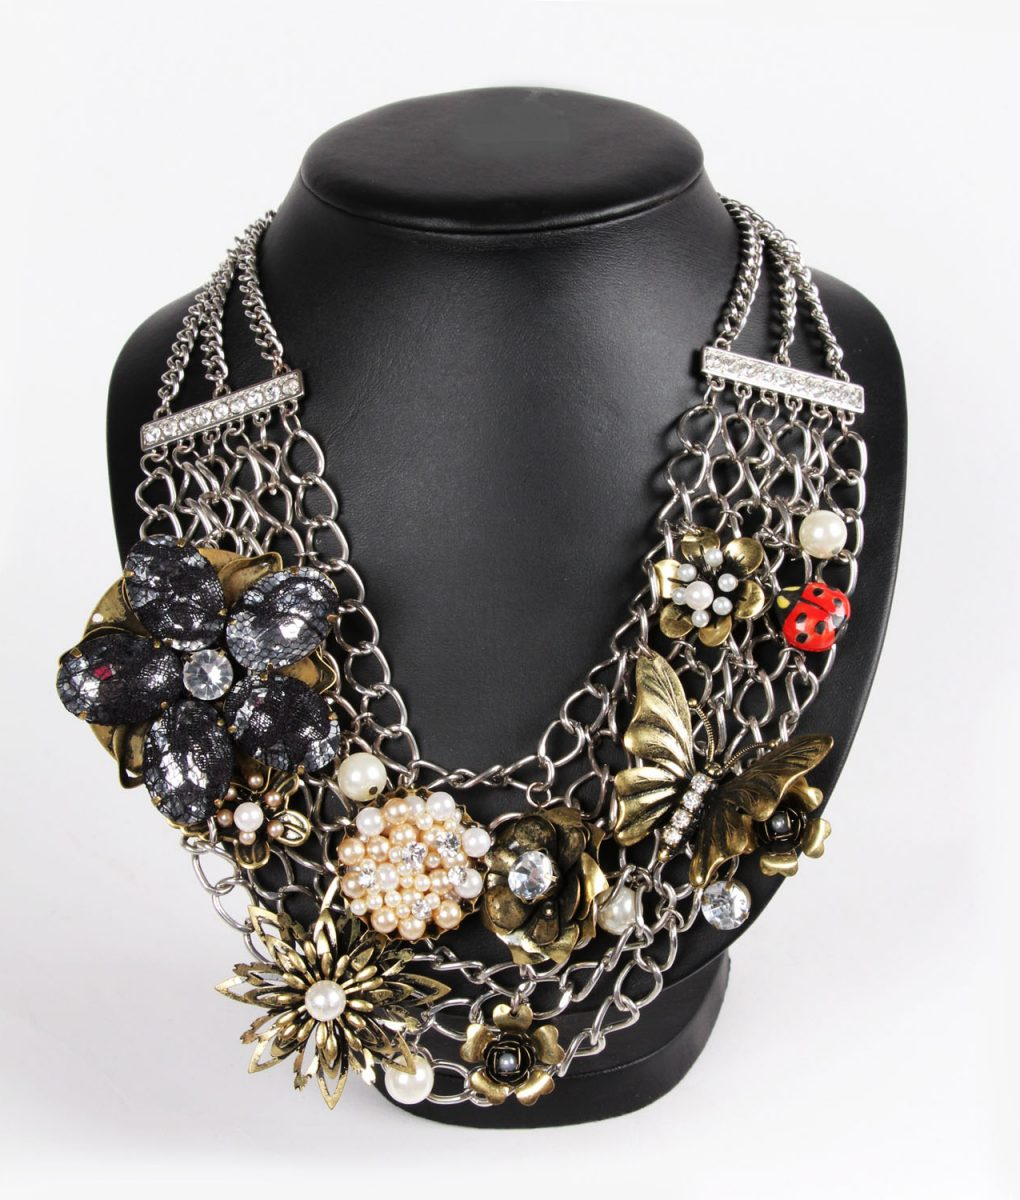 Ladybird and Flowers Statement Necklace